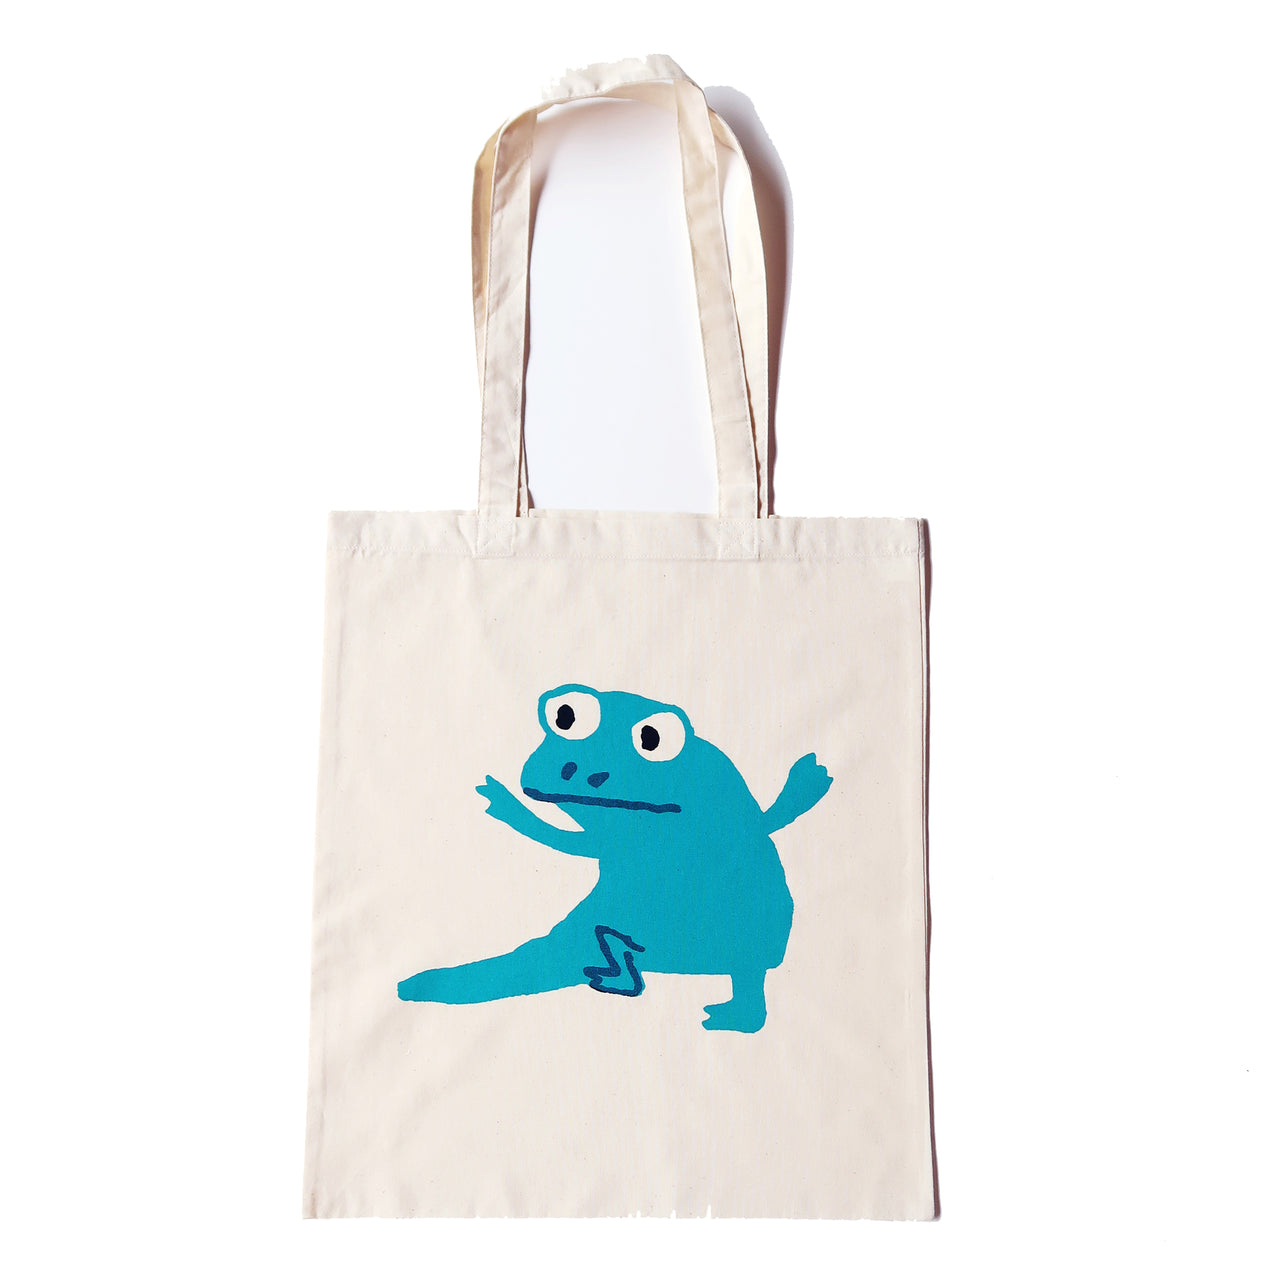 Newt Turquoise Tote